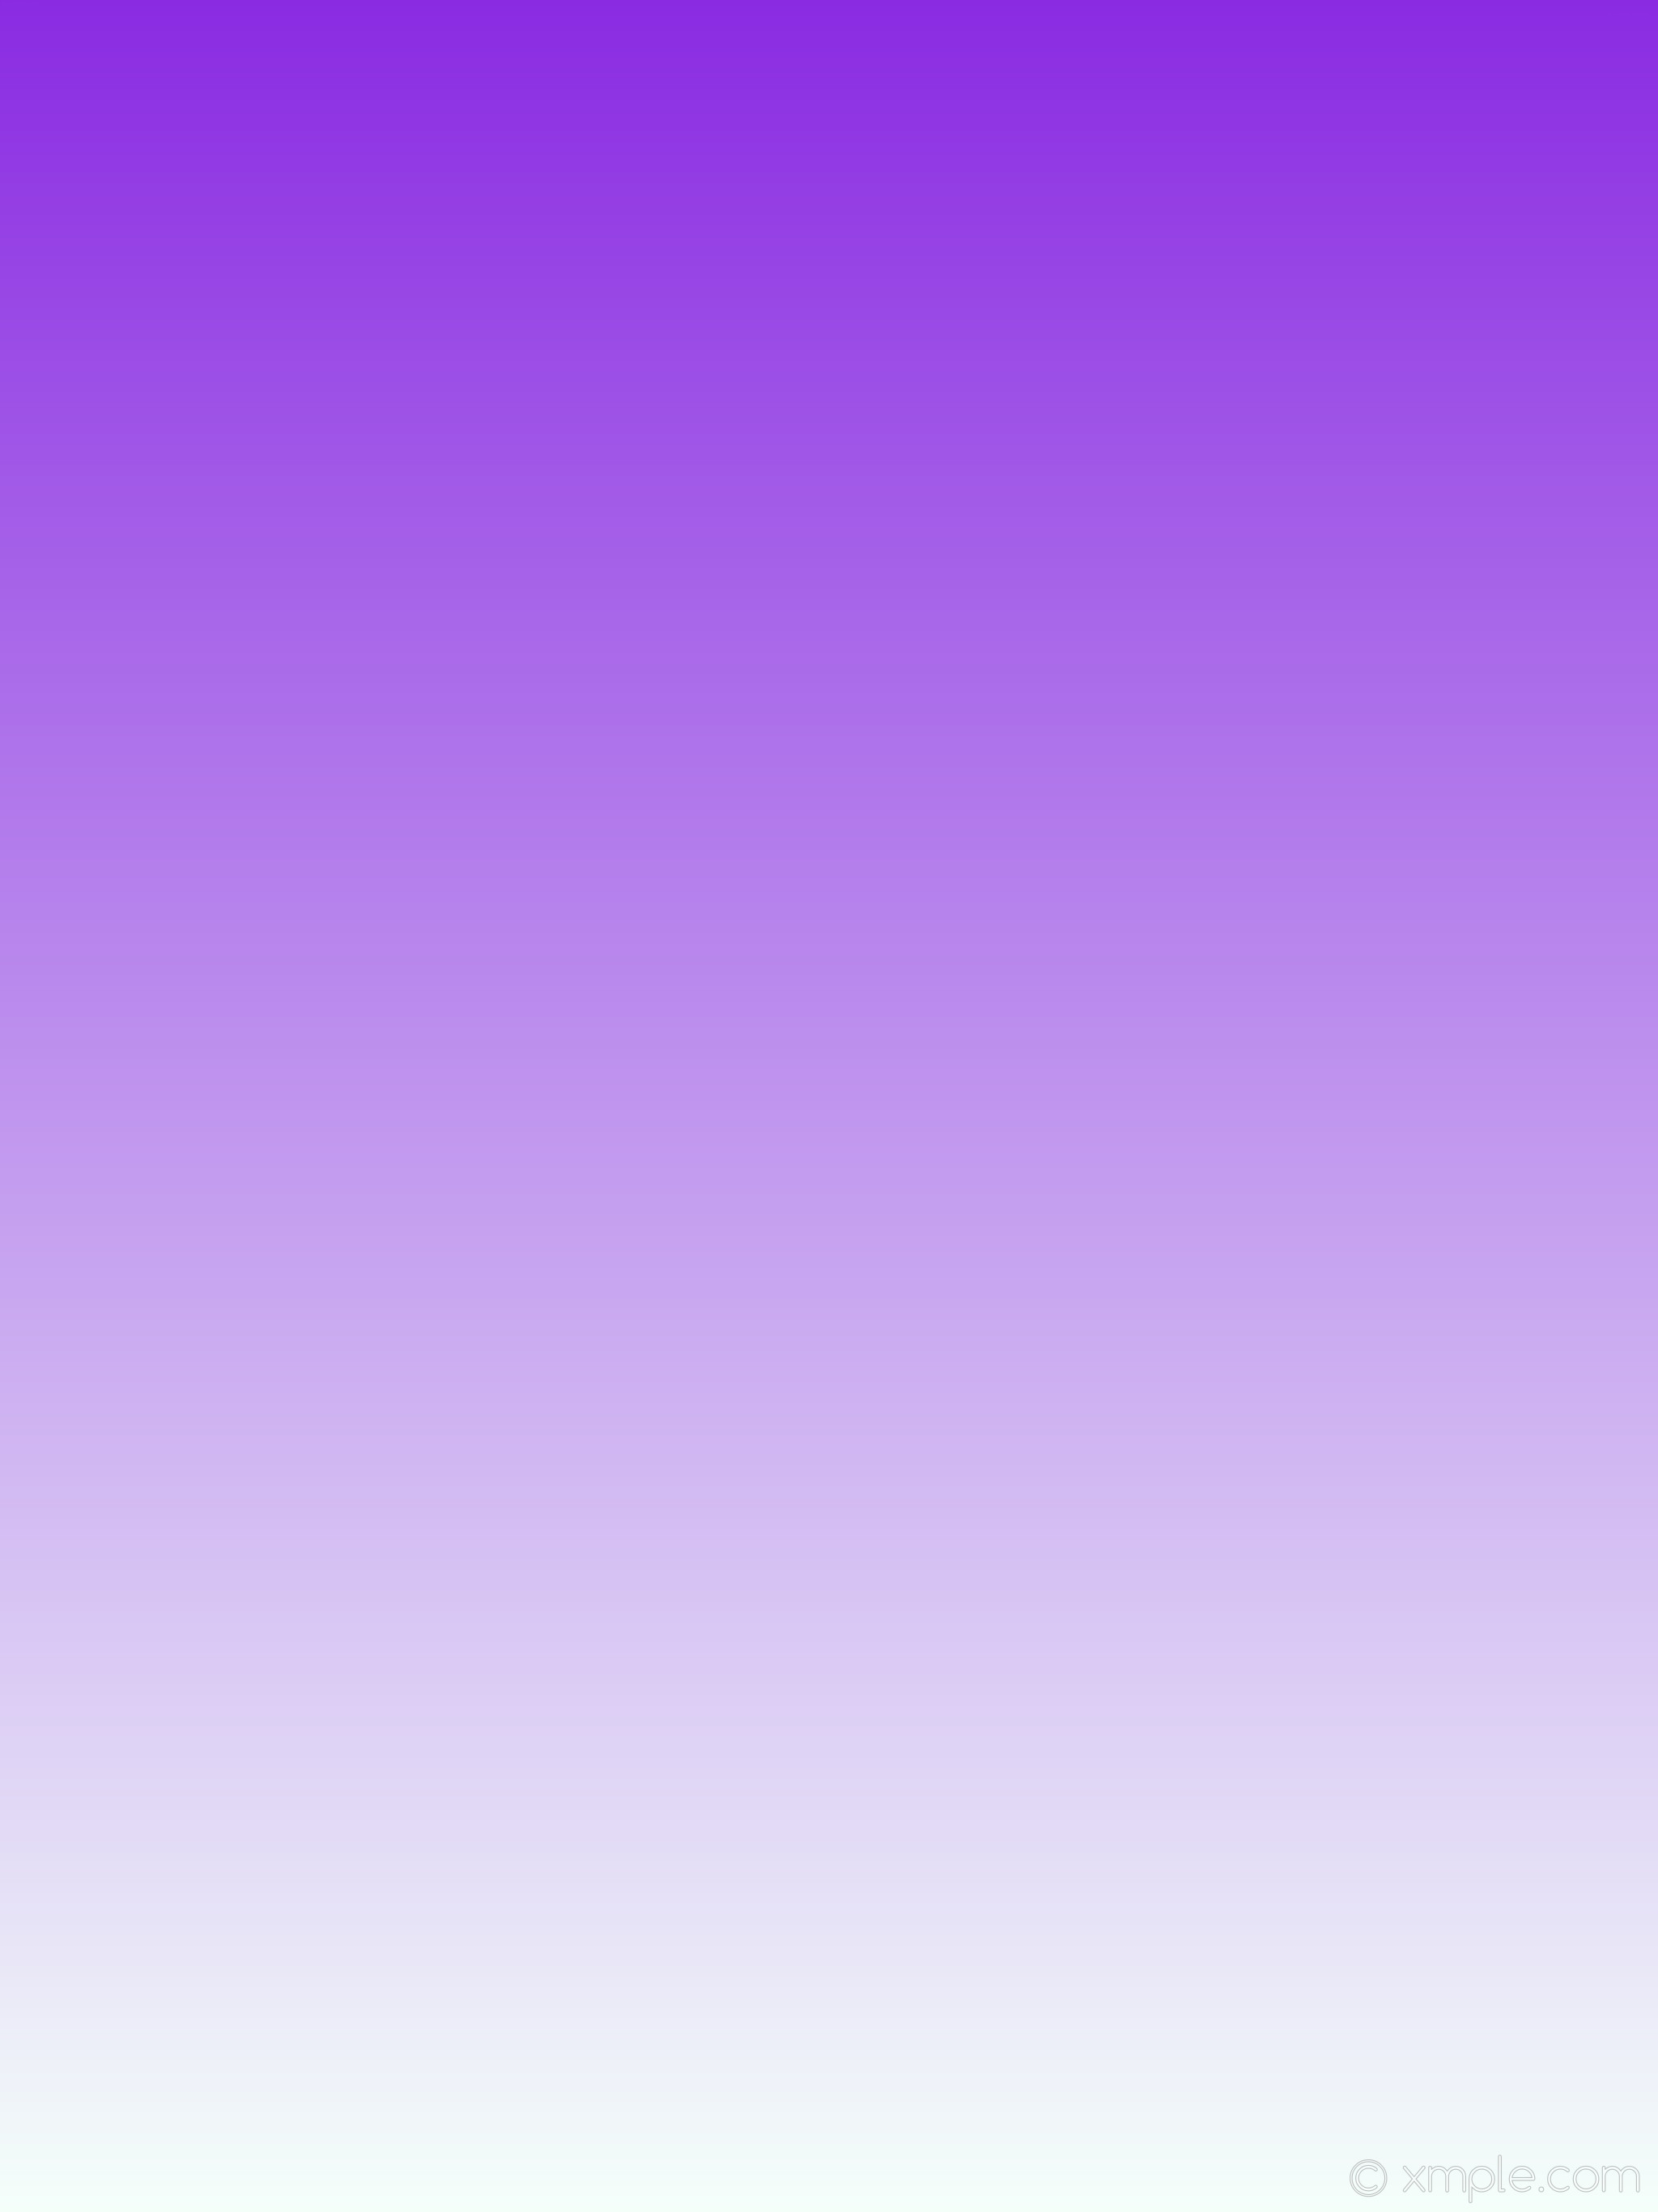 Purple and White Backgrounds 53 images